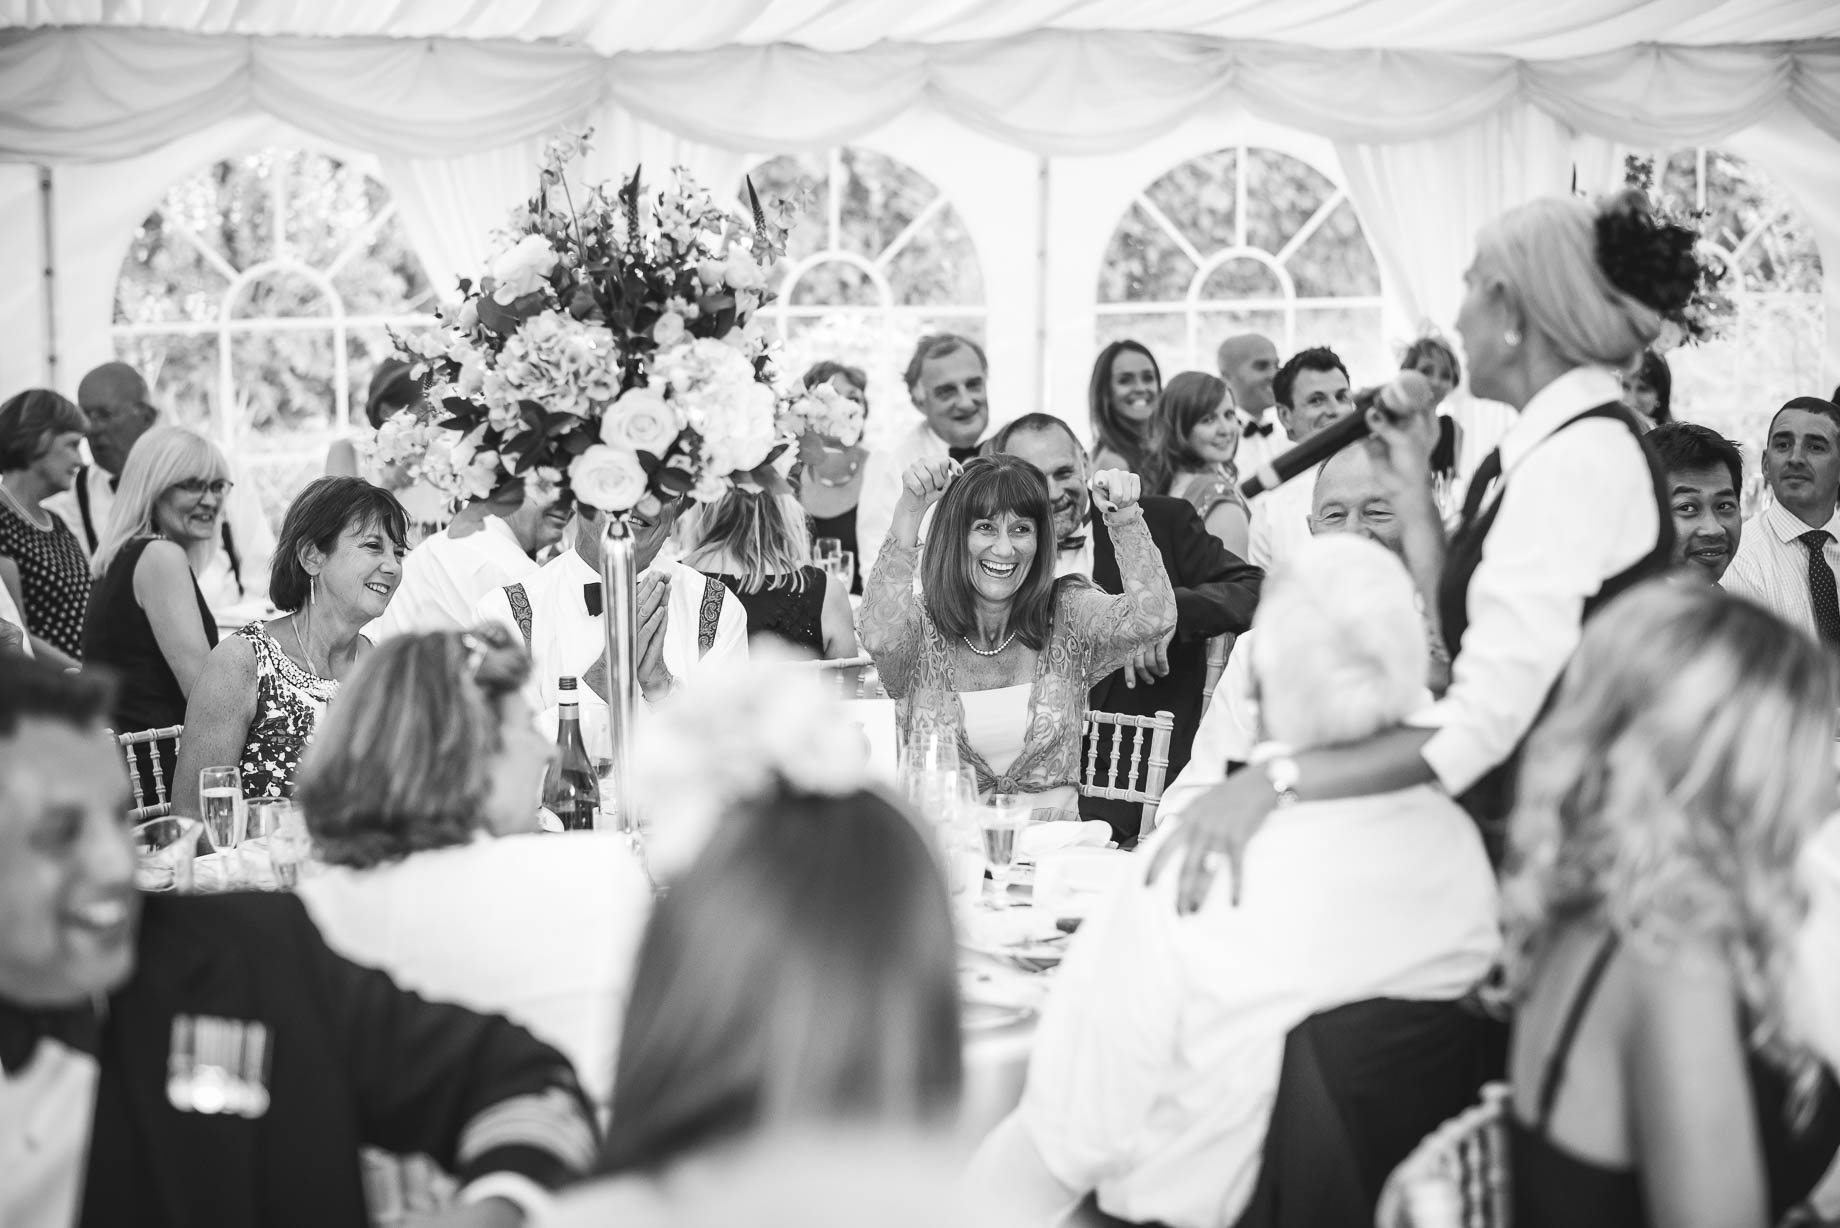 Hampshire wedding photography - Emily and Rob - Guy Collier Photography (174 of 192)